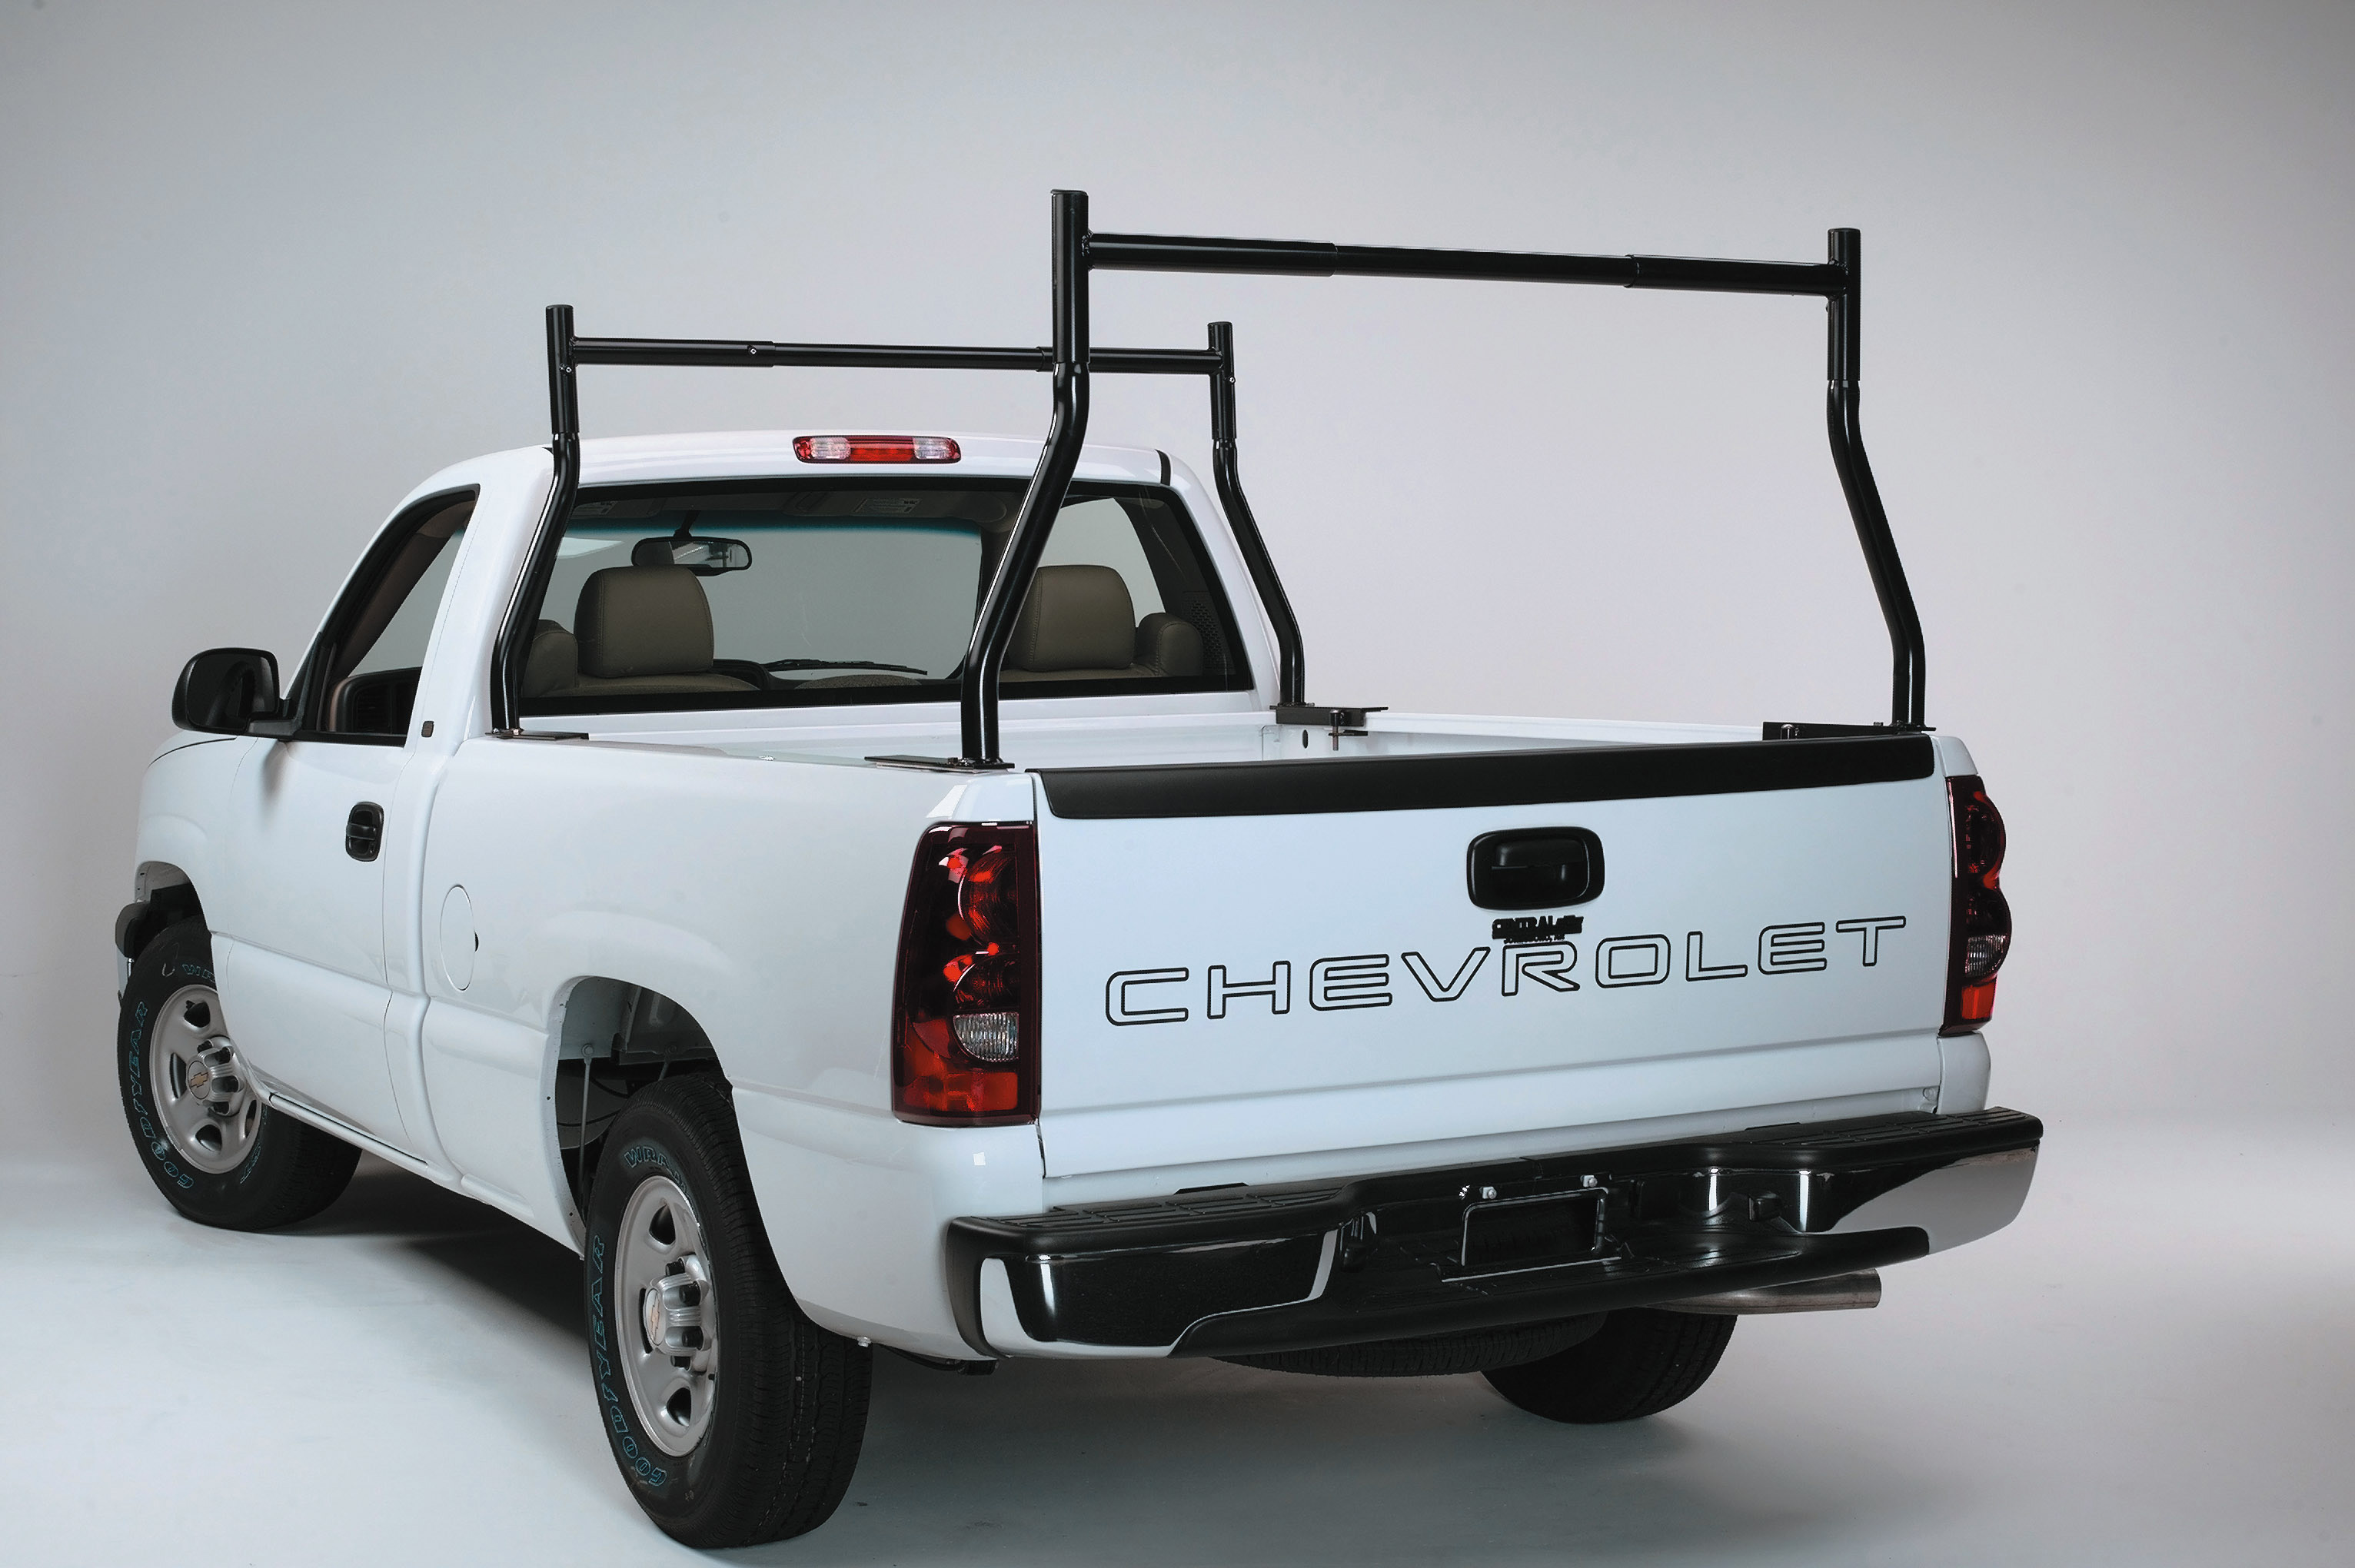 Heavy Duty Truck Racks >> Universal Fit Heavy Duty Truck Rack Fits All Full Size And Mid Size Trucks